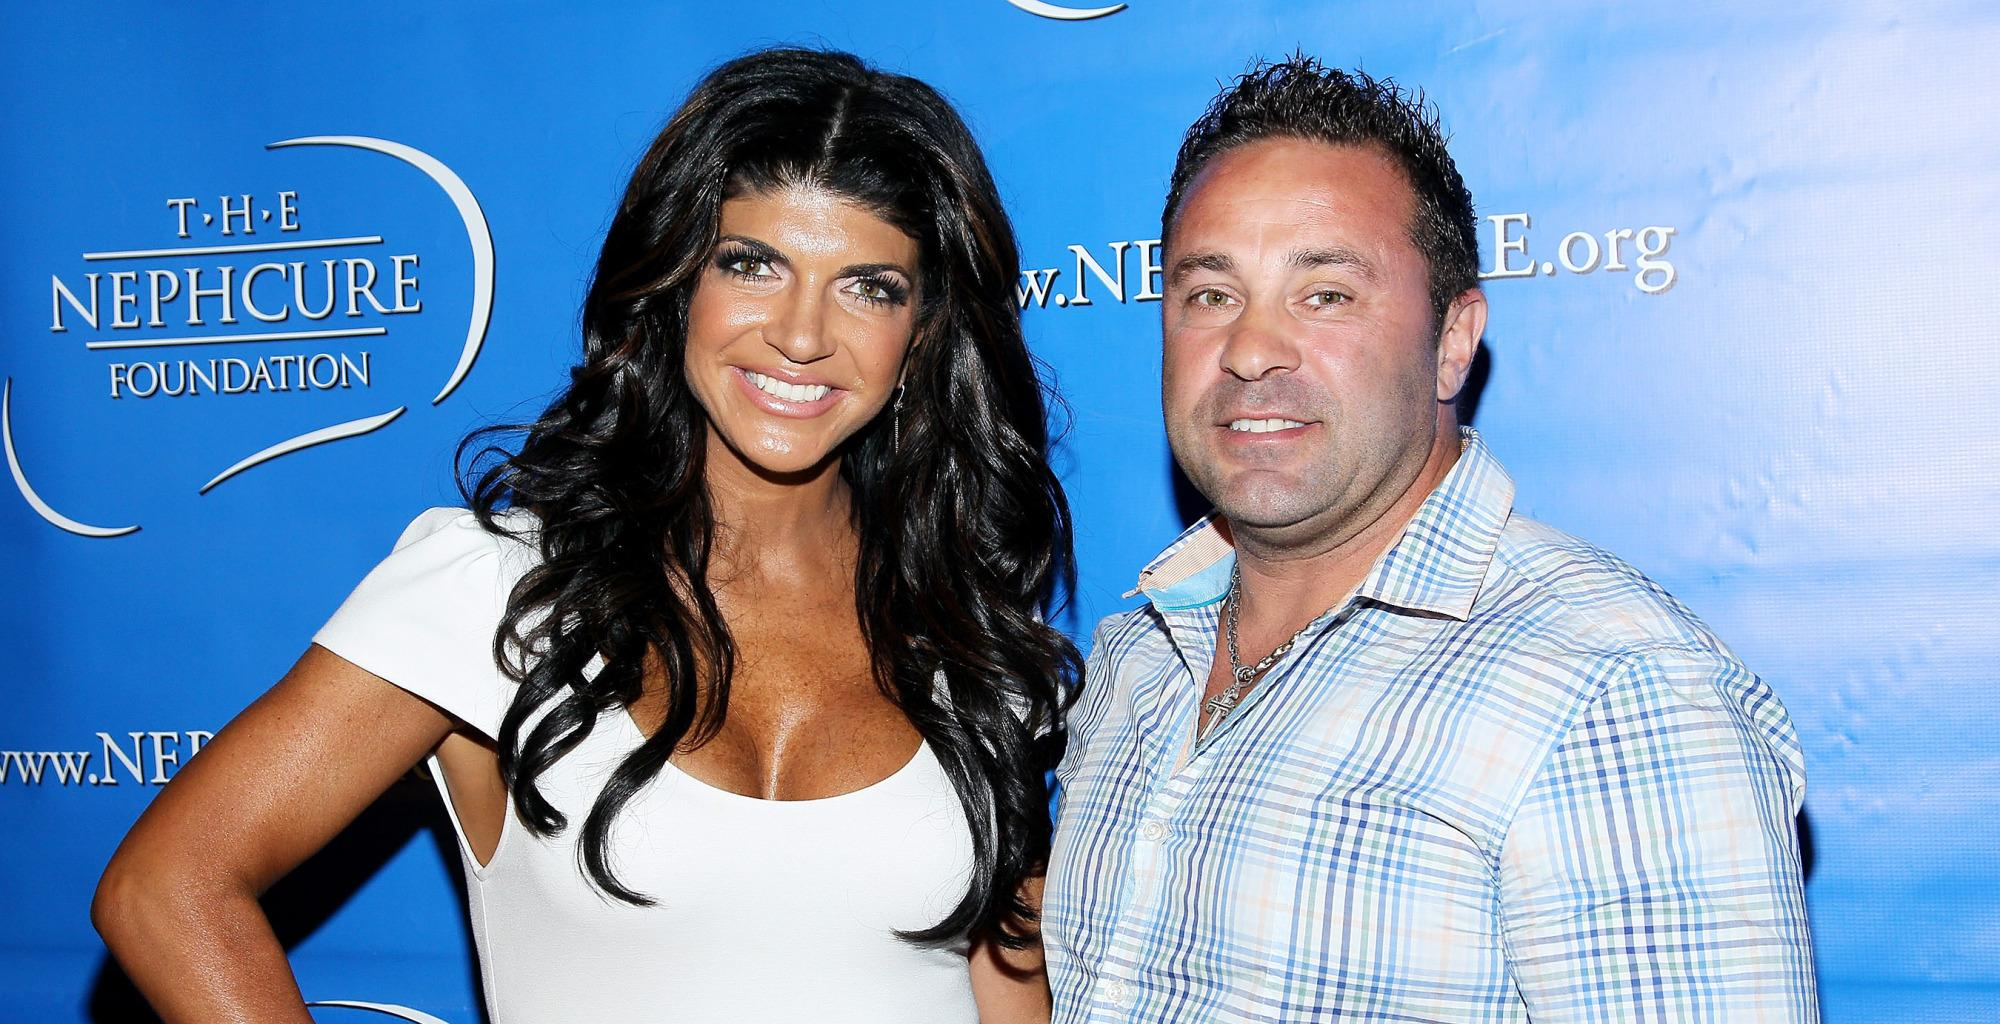 Teresa Giudice Is Certain Divorce Is The Best Option If Joe Gets Deported - Here's Why!